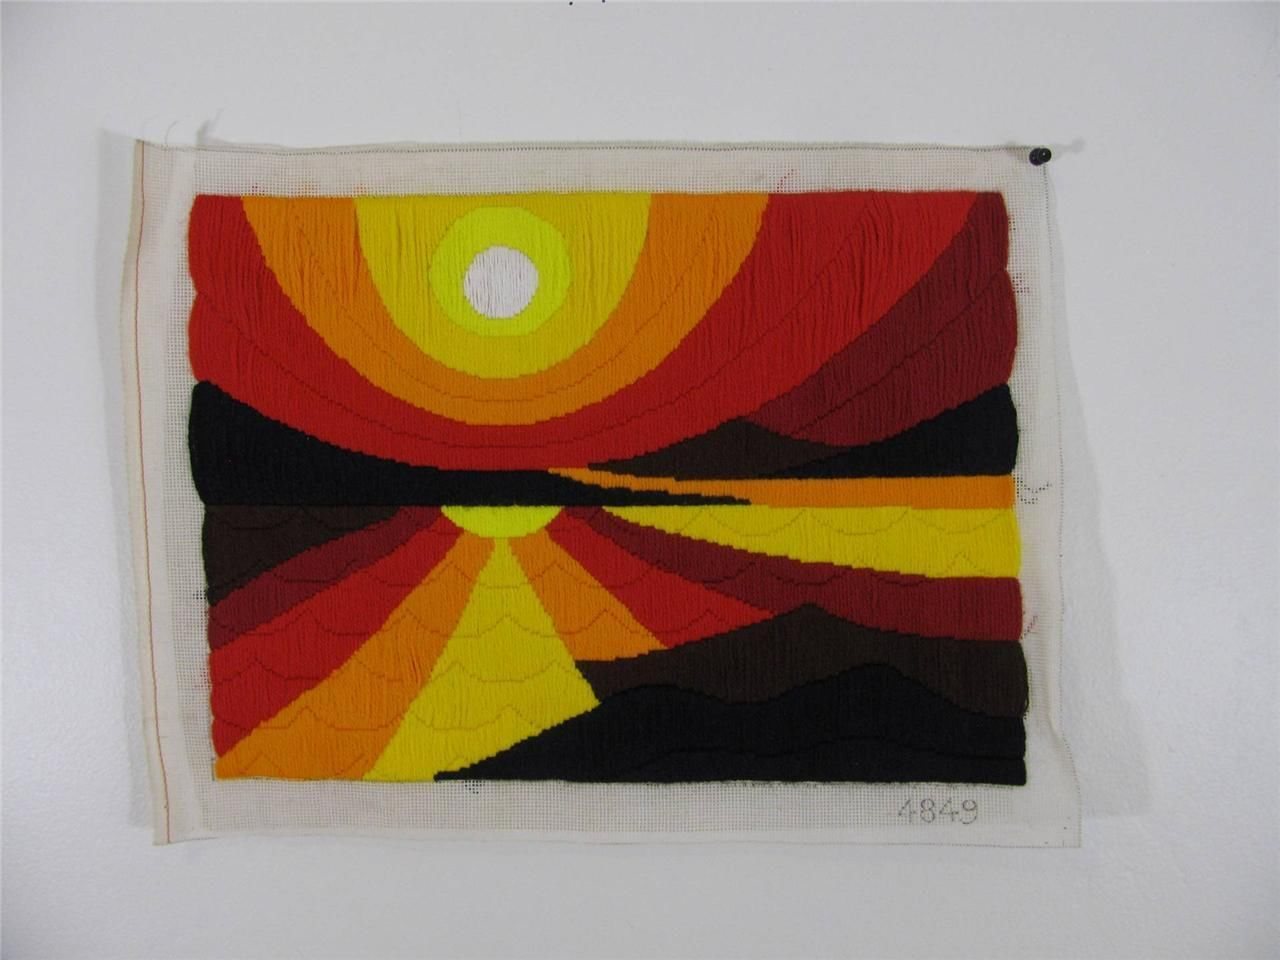 Mid Century 70s Textile Art Embroidery Pop Op Bold Sun Rise Wall Hanging   eBay